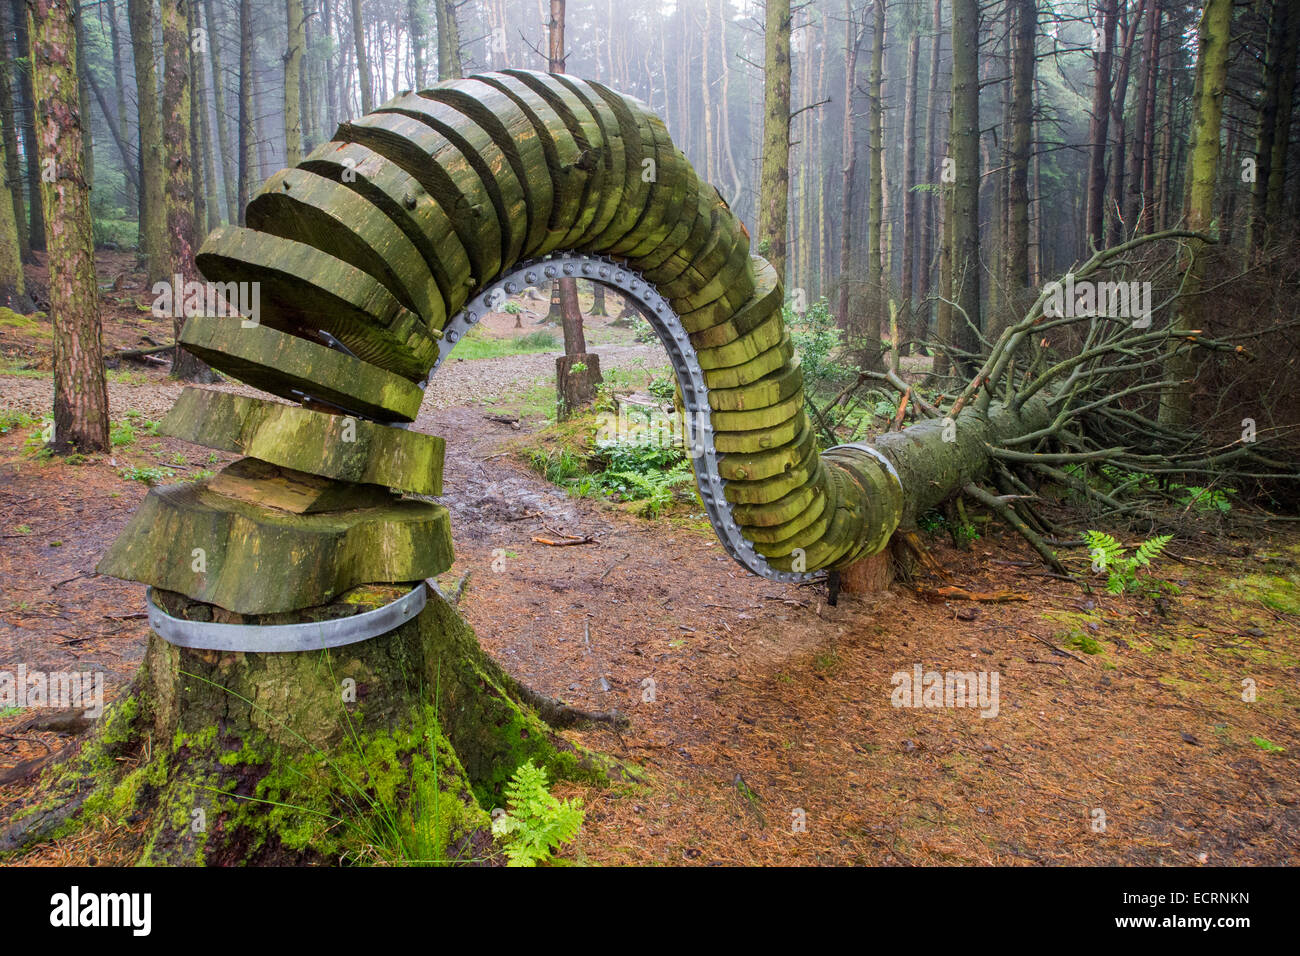 The Pendle Sculpture trail in Aitken Wood, on Pendle, near Clitheroe, Lancashire, UK. - Stock Image